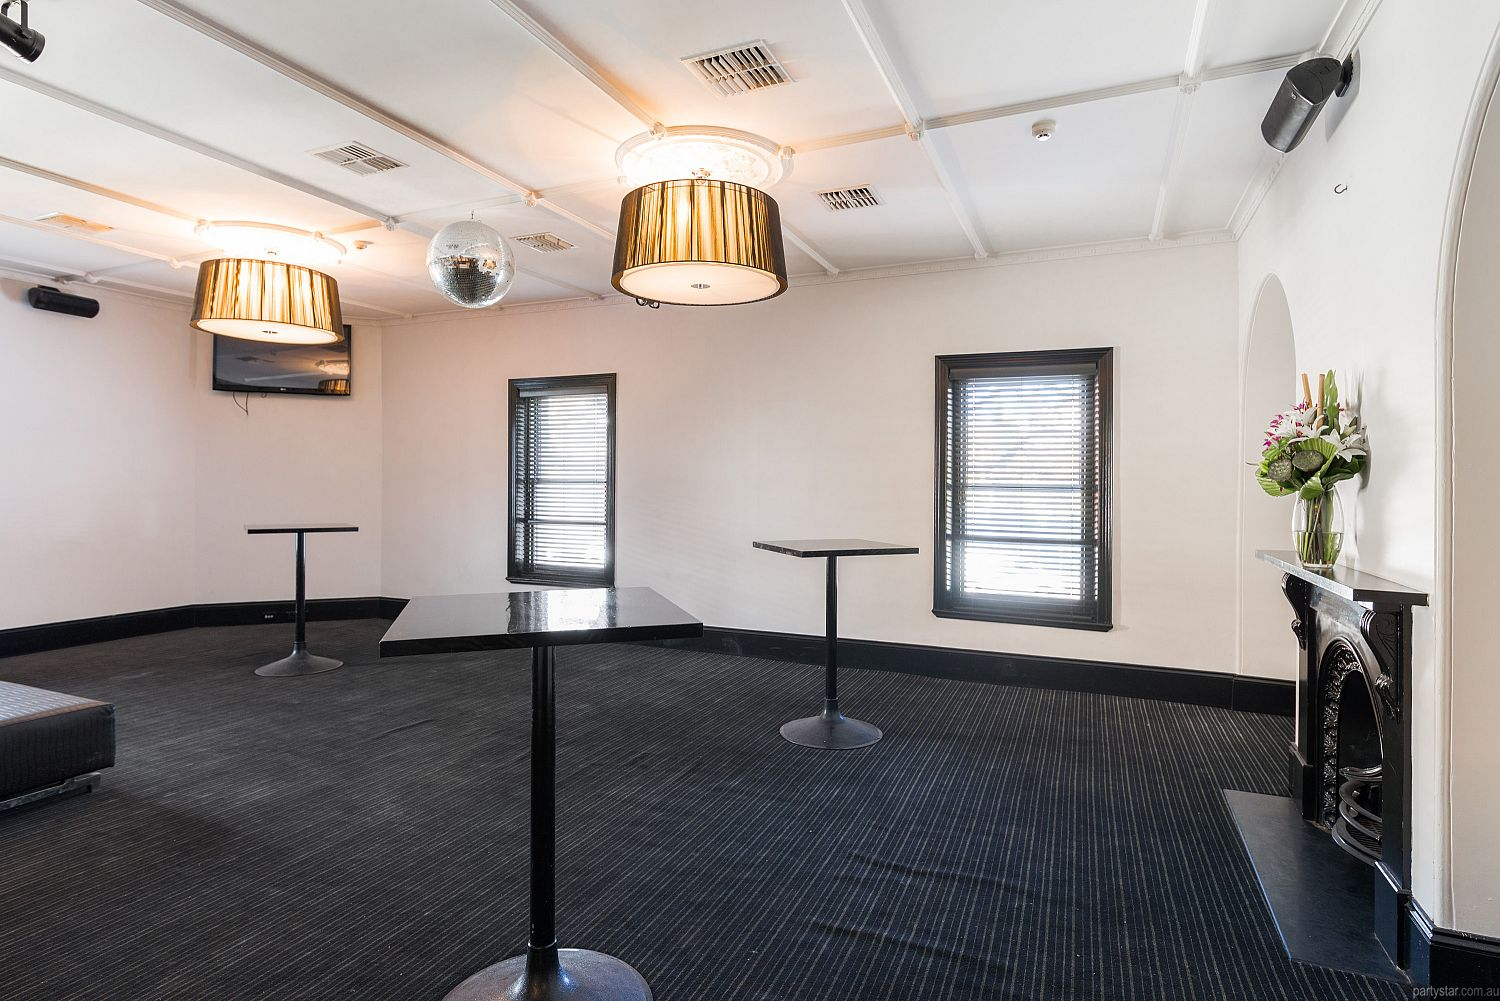 Wakefield Hotel, Adelaide, SA. Function Room hire photo #4